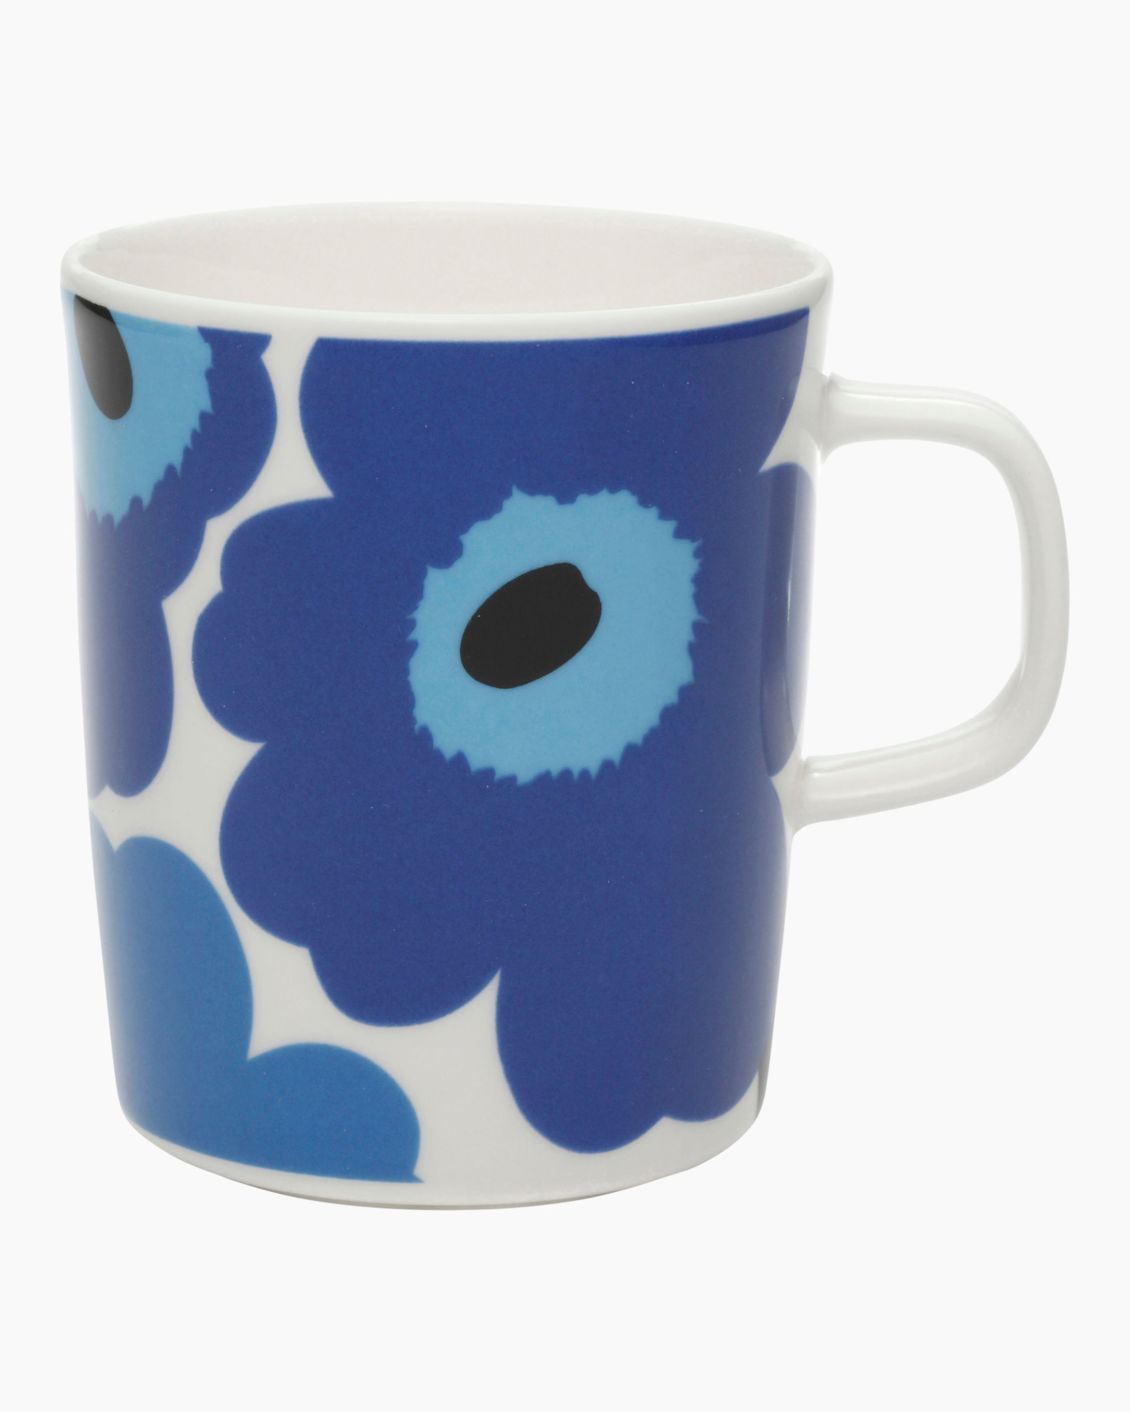 Marimekko 2.5dL Mug, Dark Blue & Light Blue